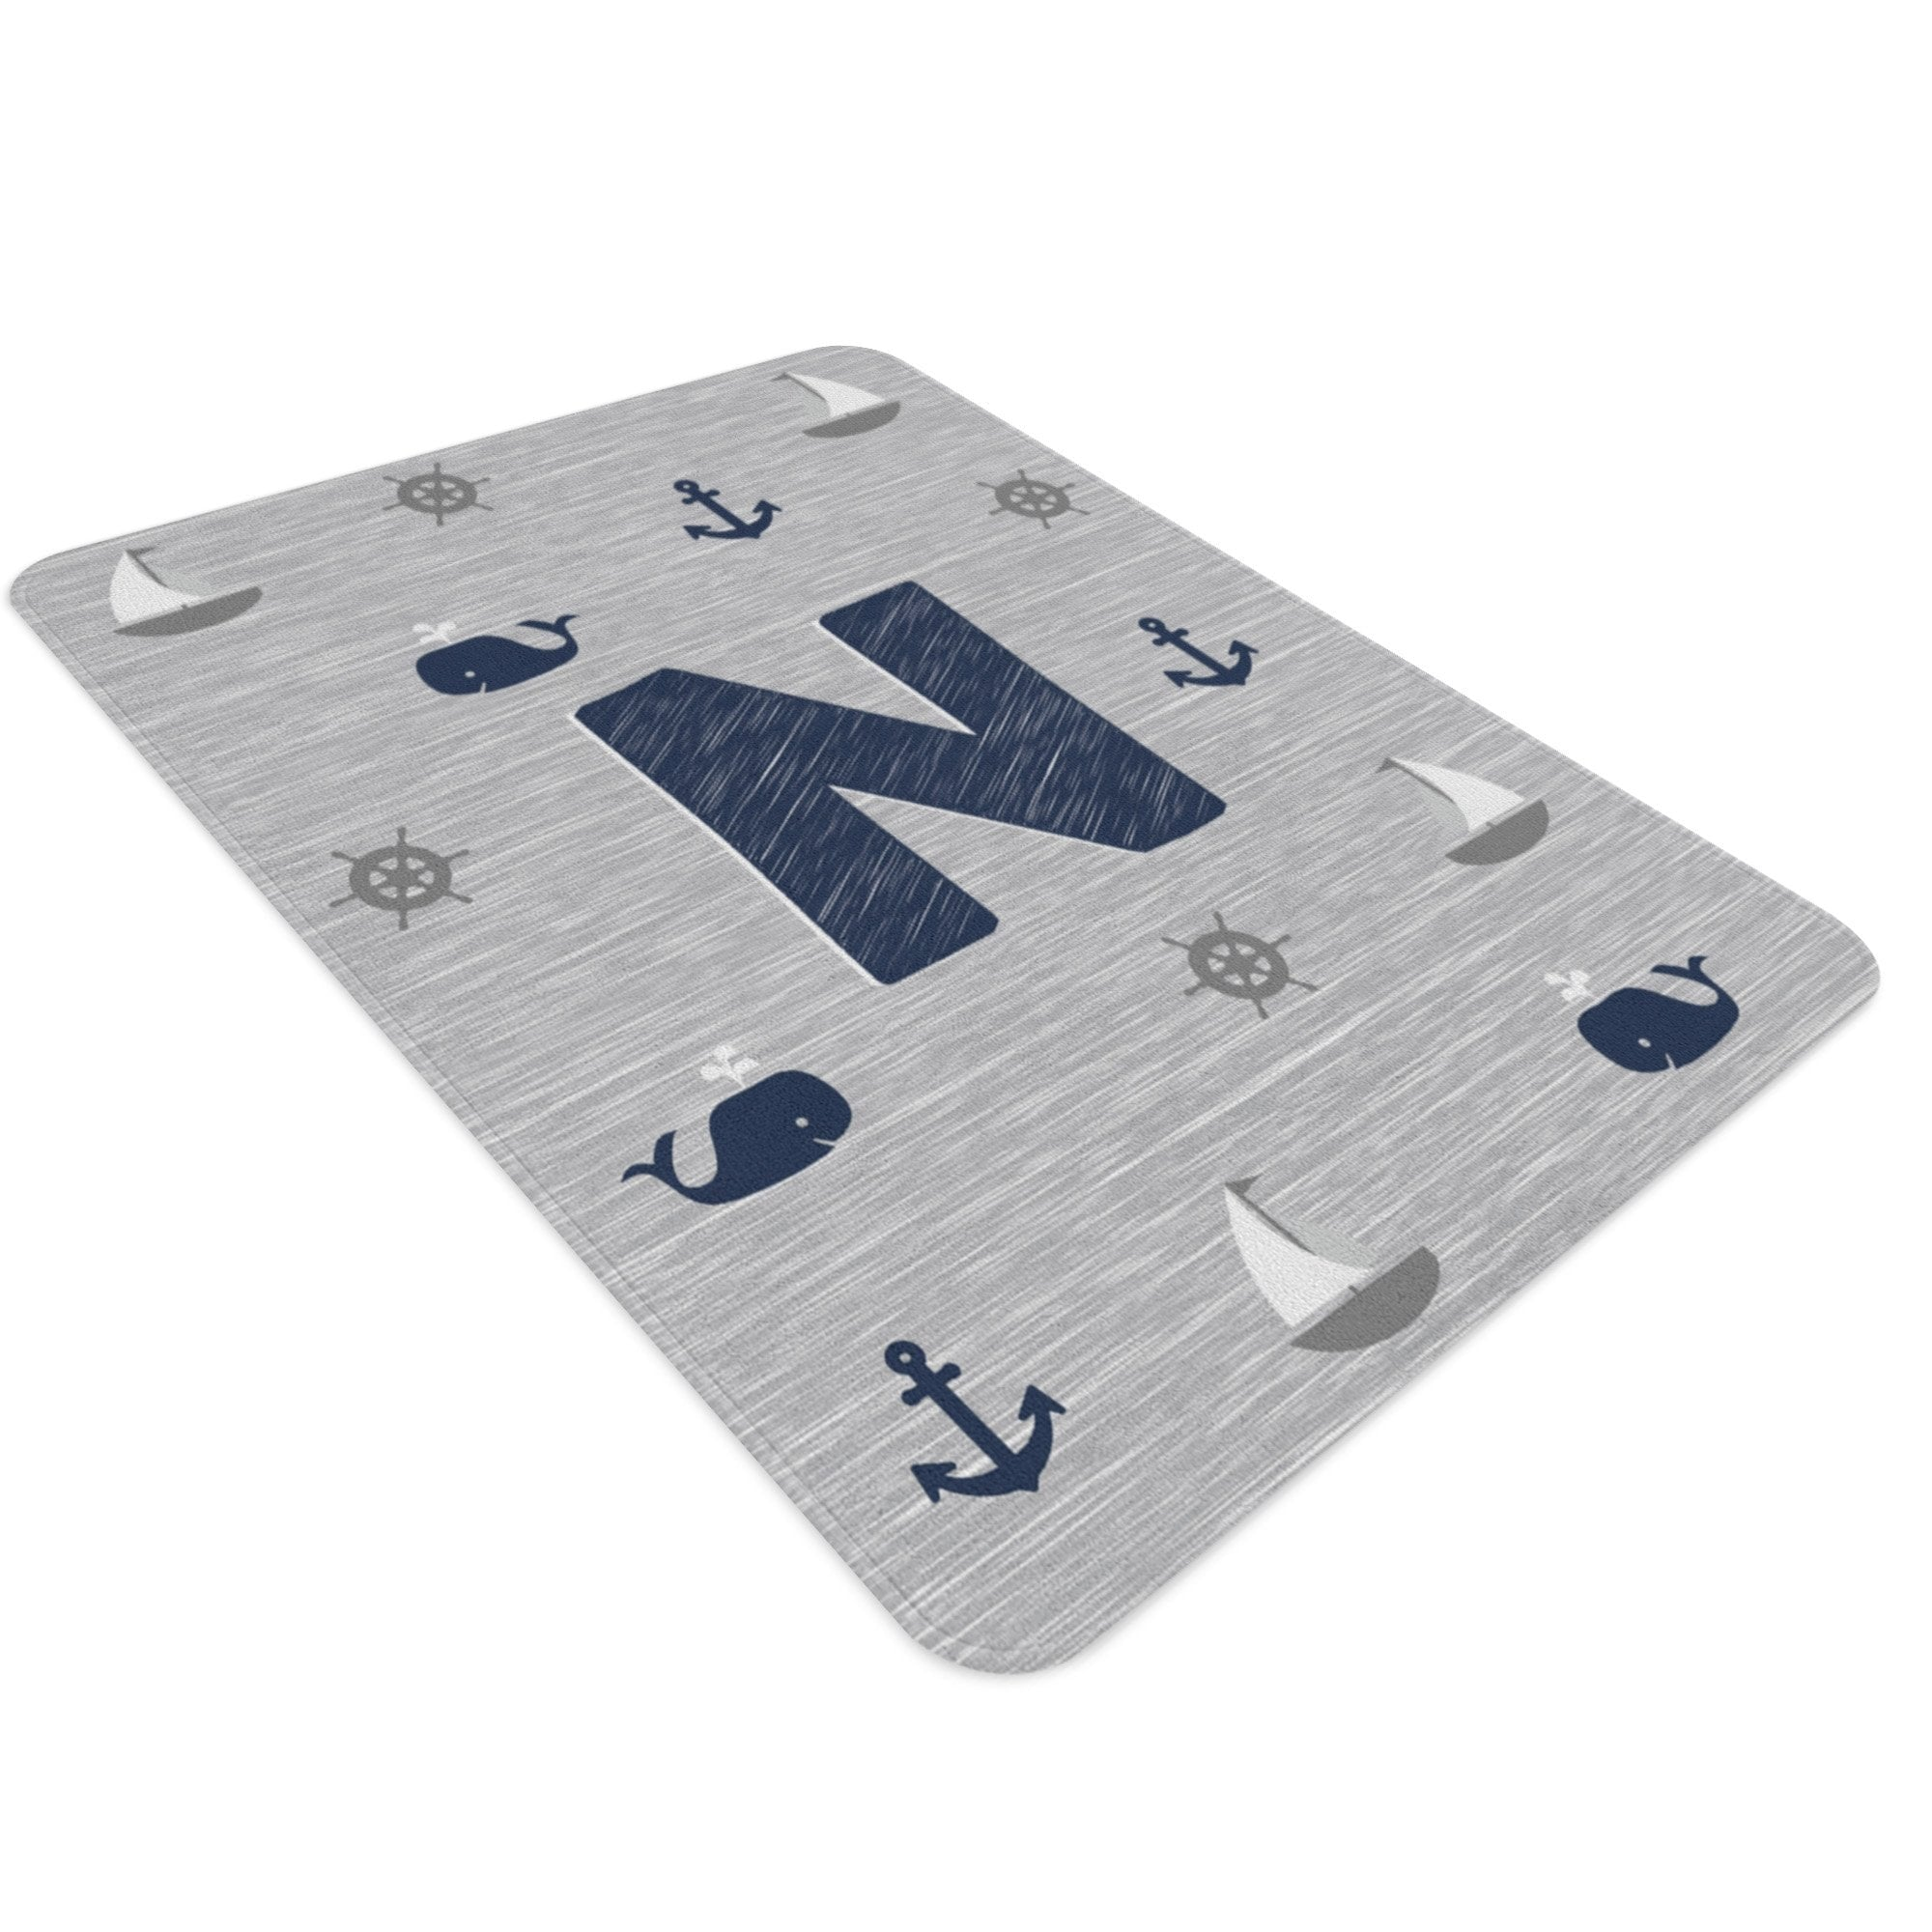 A rectangular nautical nursery rug with a monogram in the centre. It is gray and navy and has sailboats, whales, ship wheels and anchors on it.